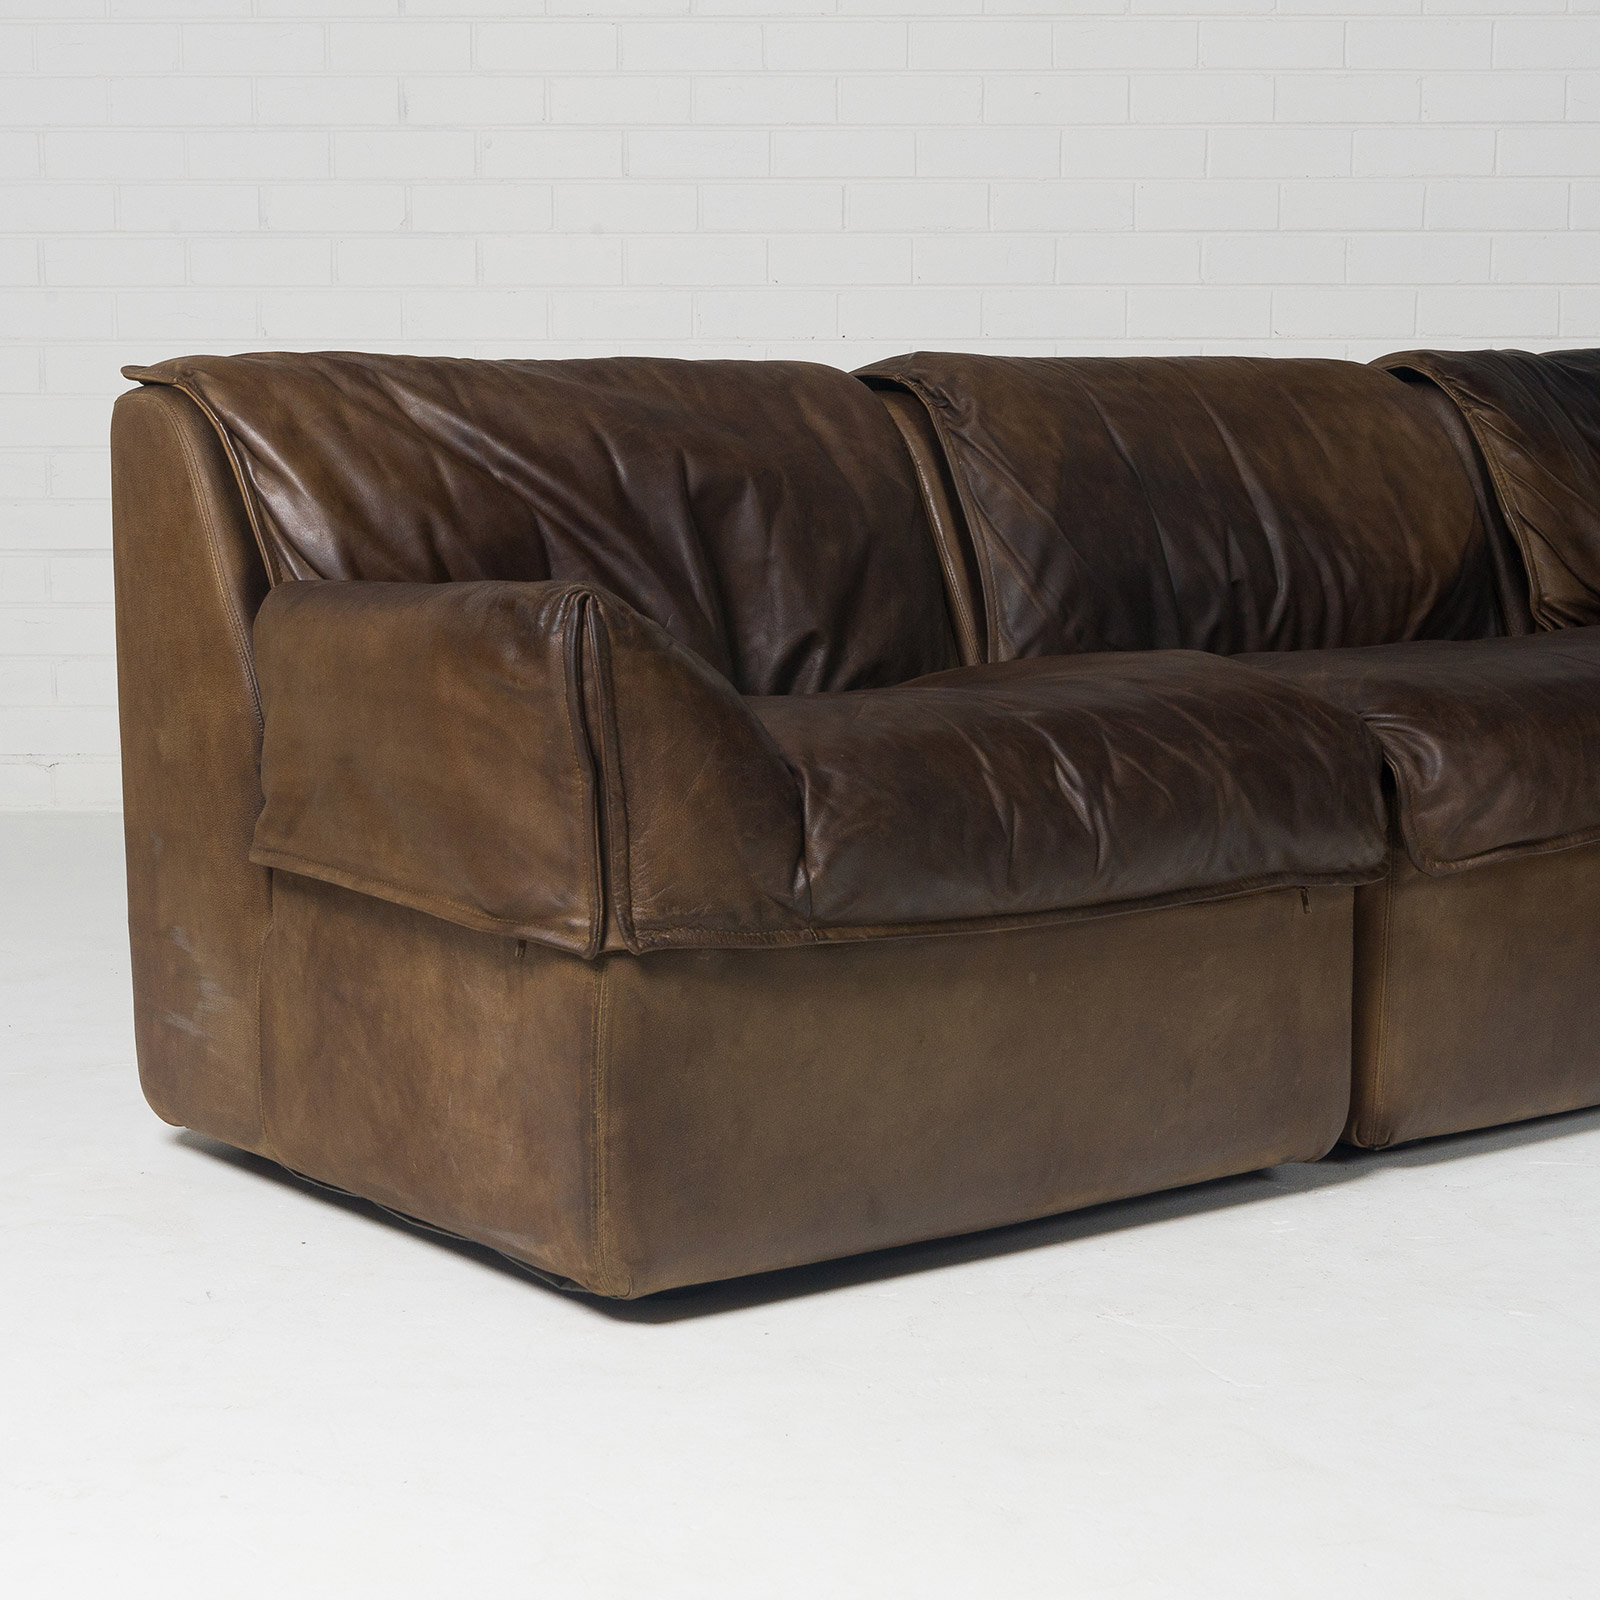 Modular Sofa By Cor With Five Modules In Tan Leather 1960s Germany 04